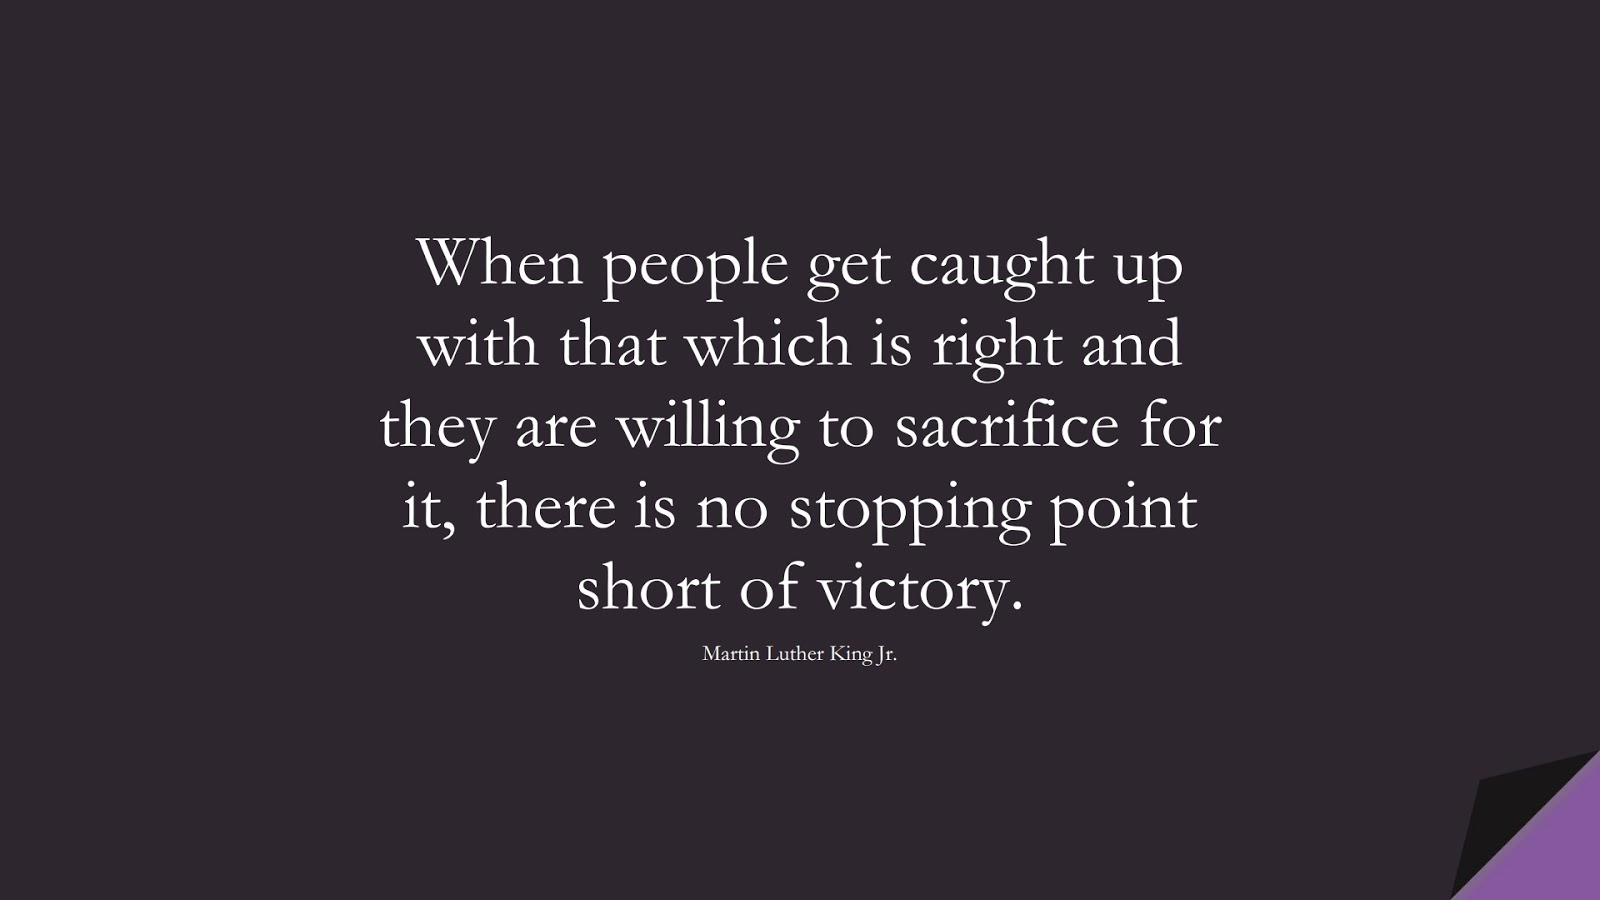 When people get caught up with that which is right and they are willing to sacrifice for it, there is no stopping point short of victory. (Martin Luther King Jr.);  #MartinLutherKingJrQuotes